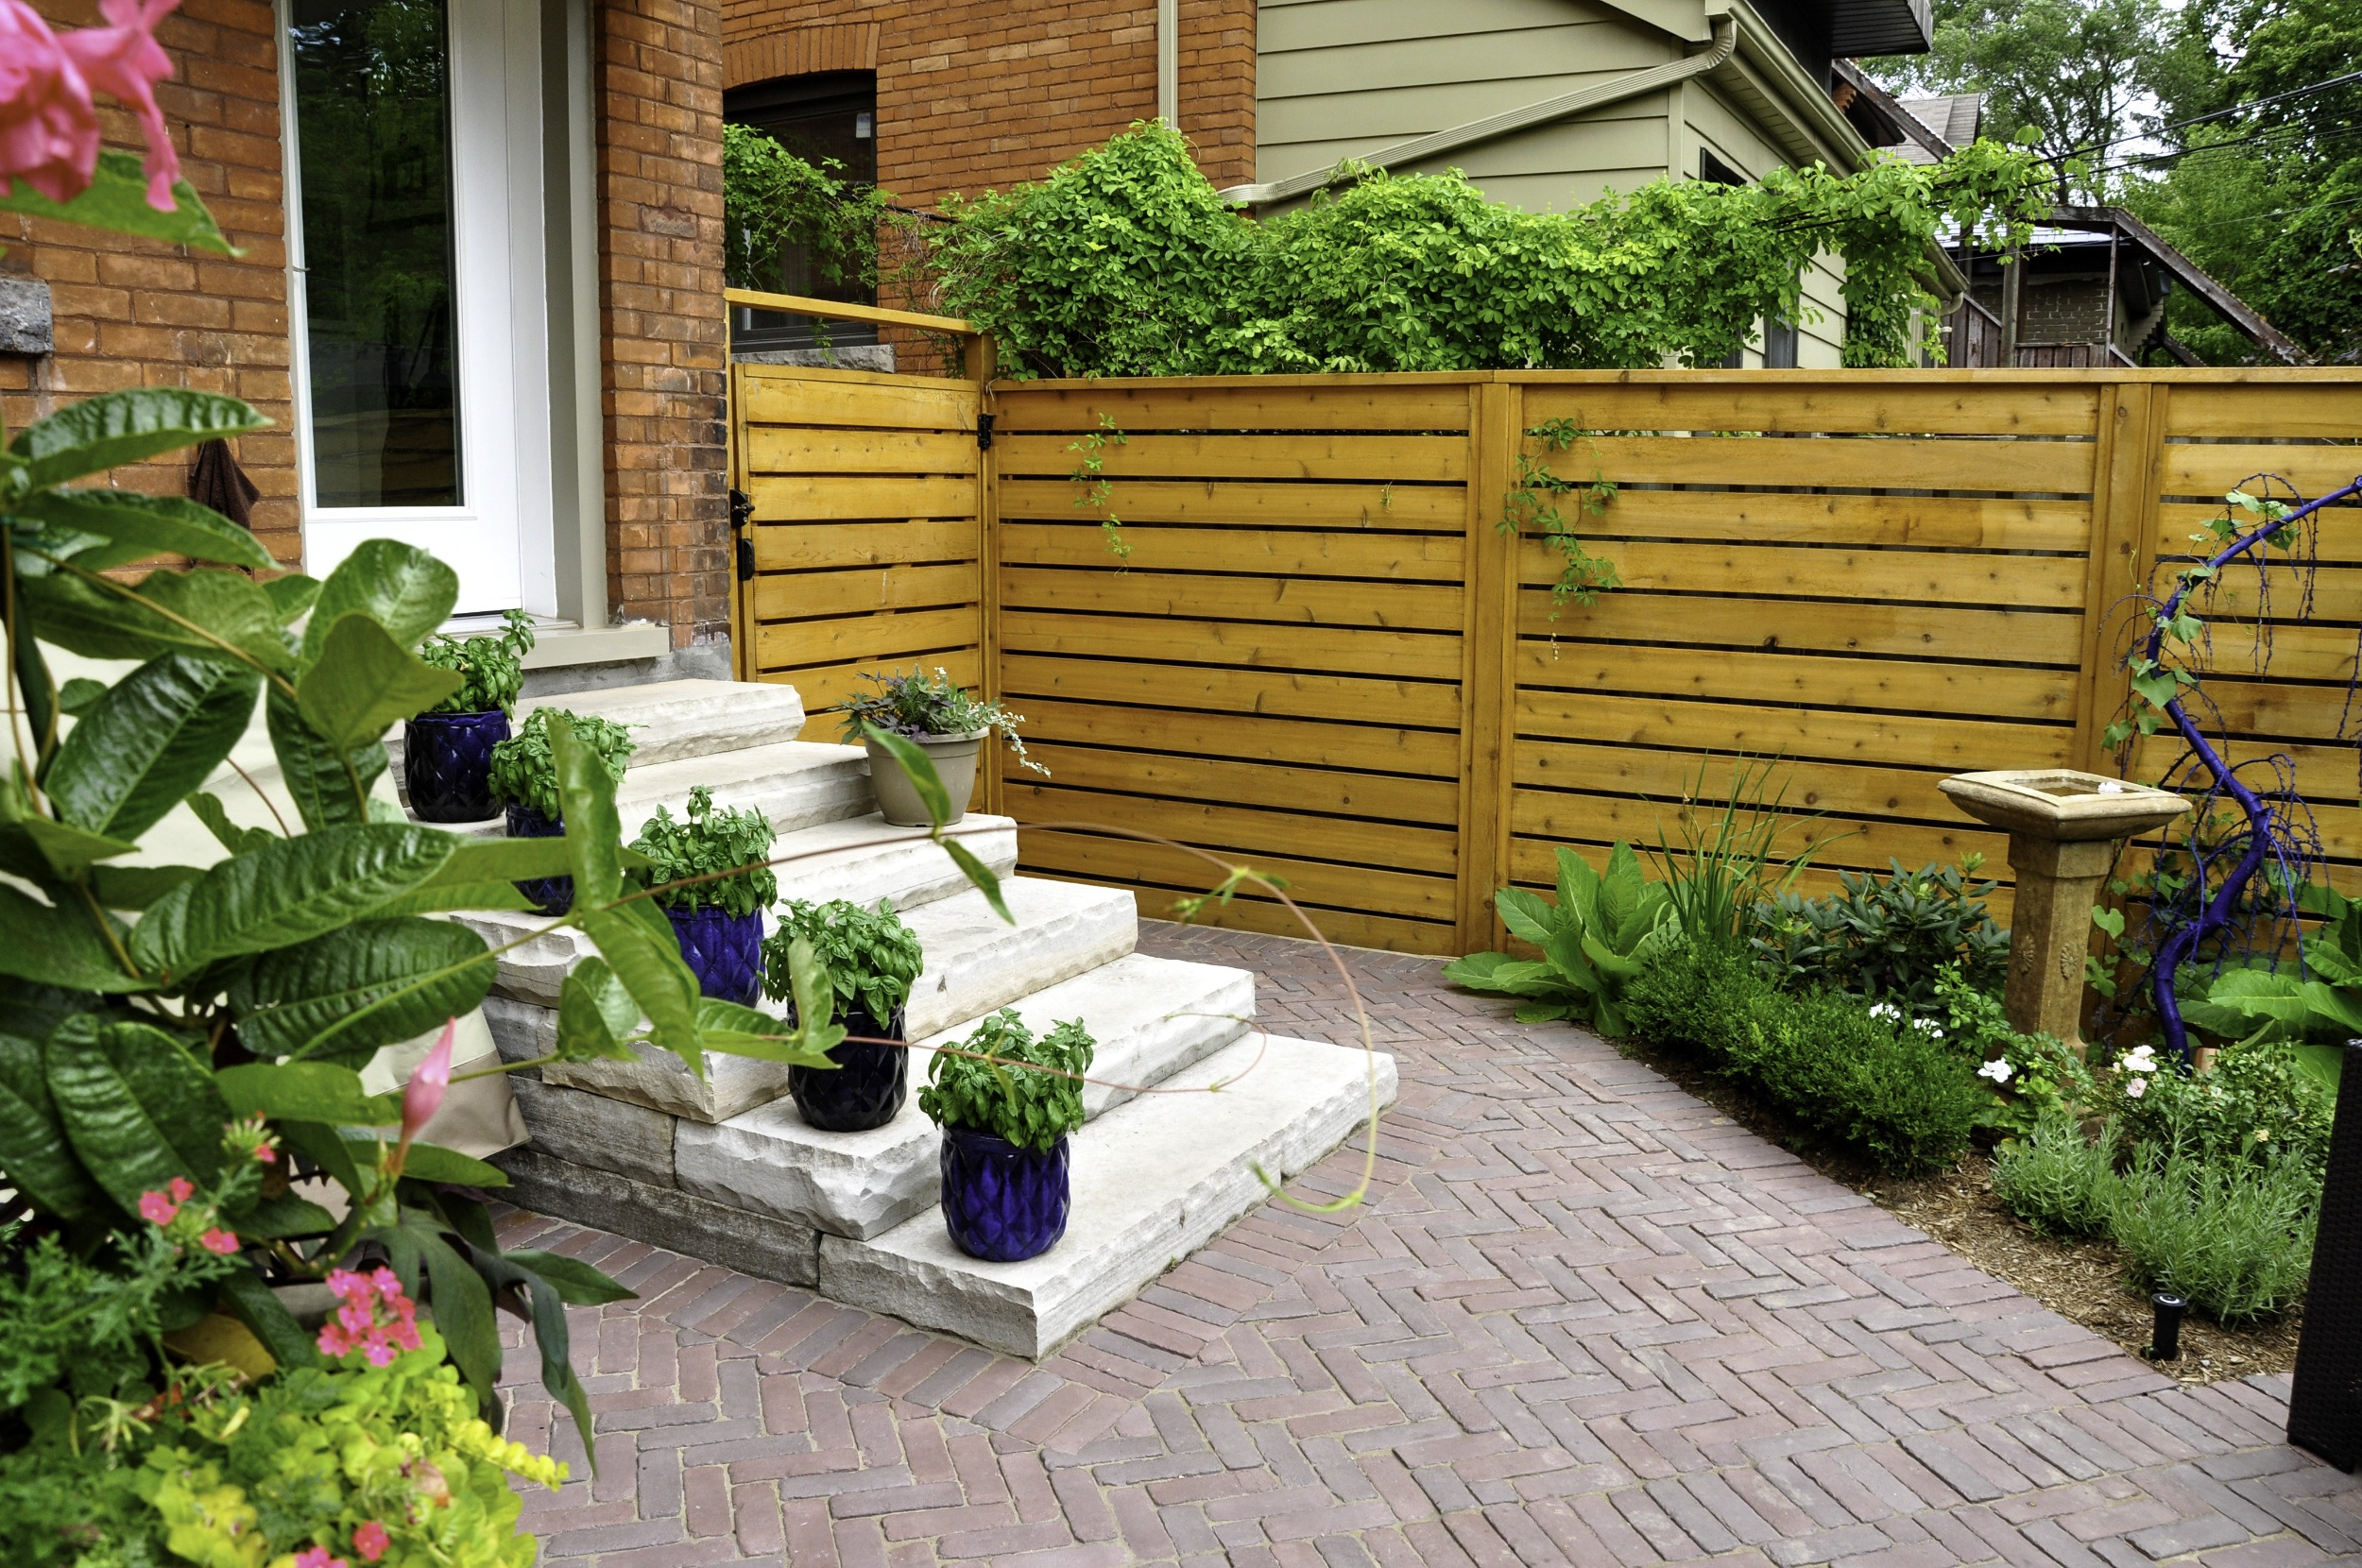 fenced patio with planters